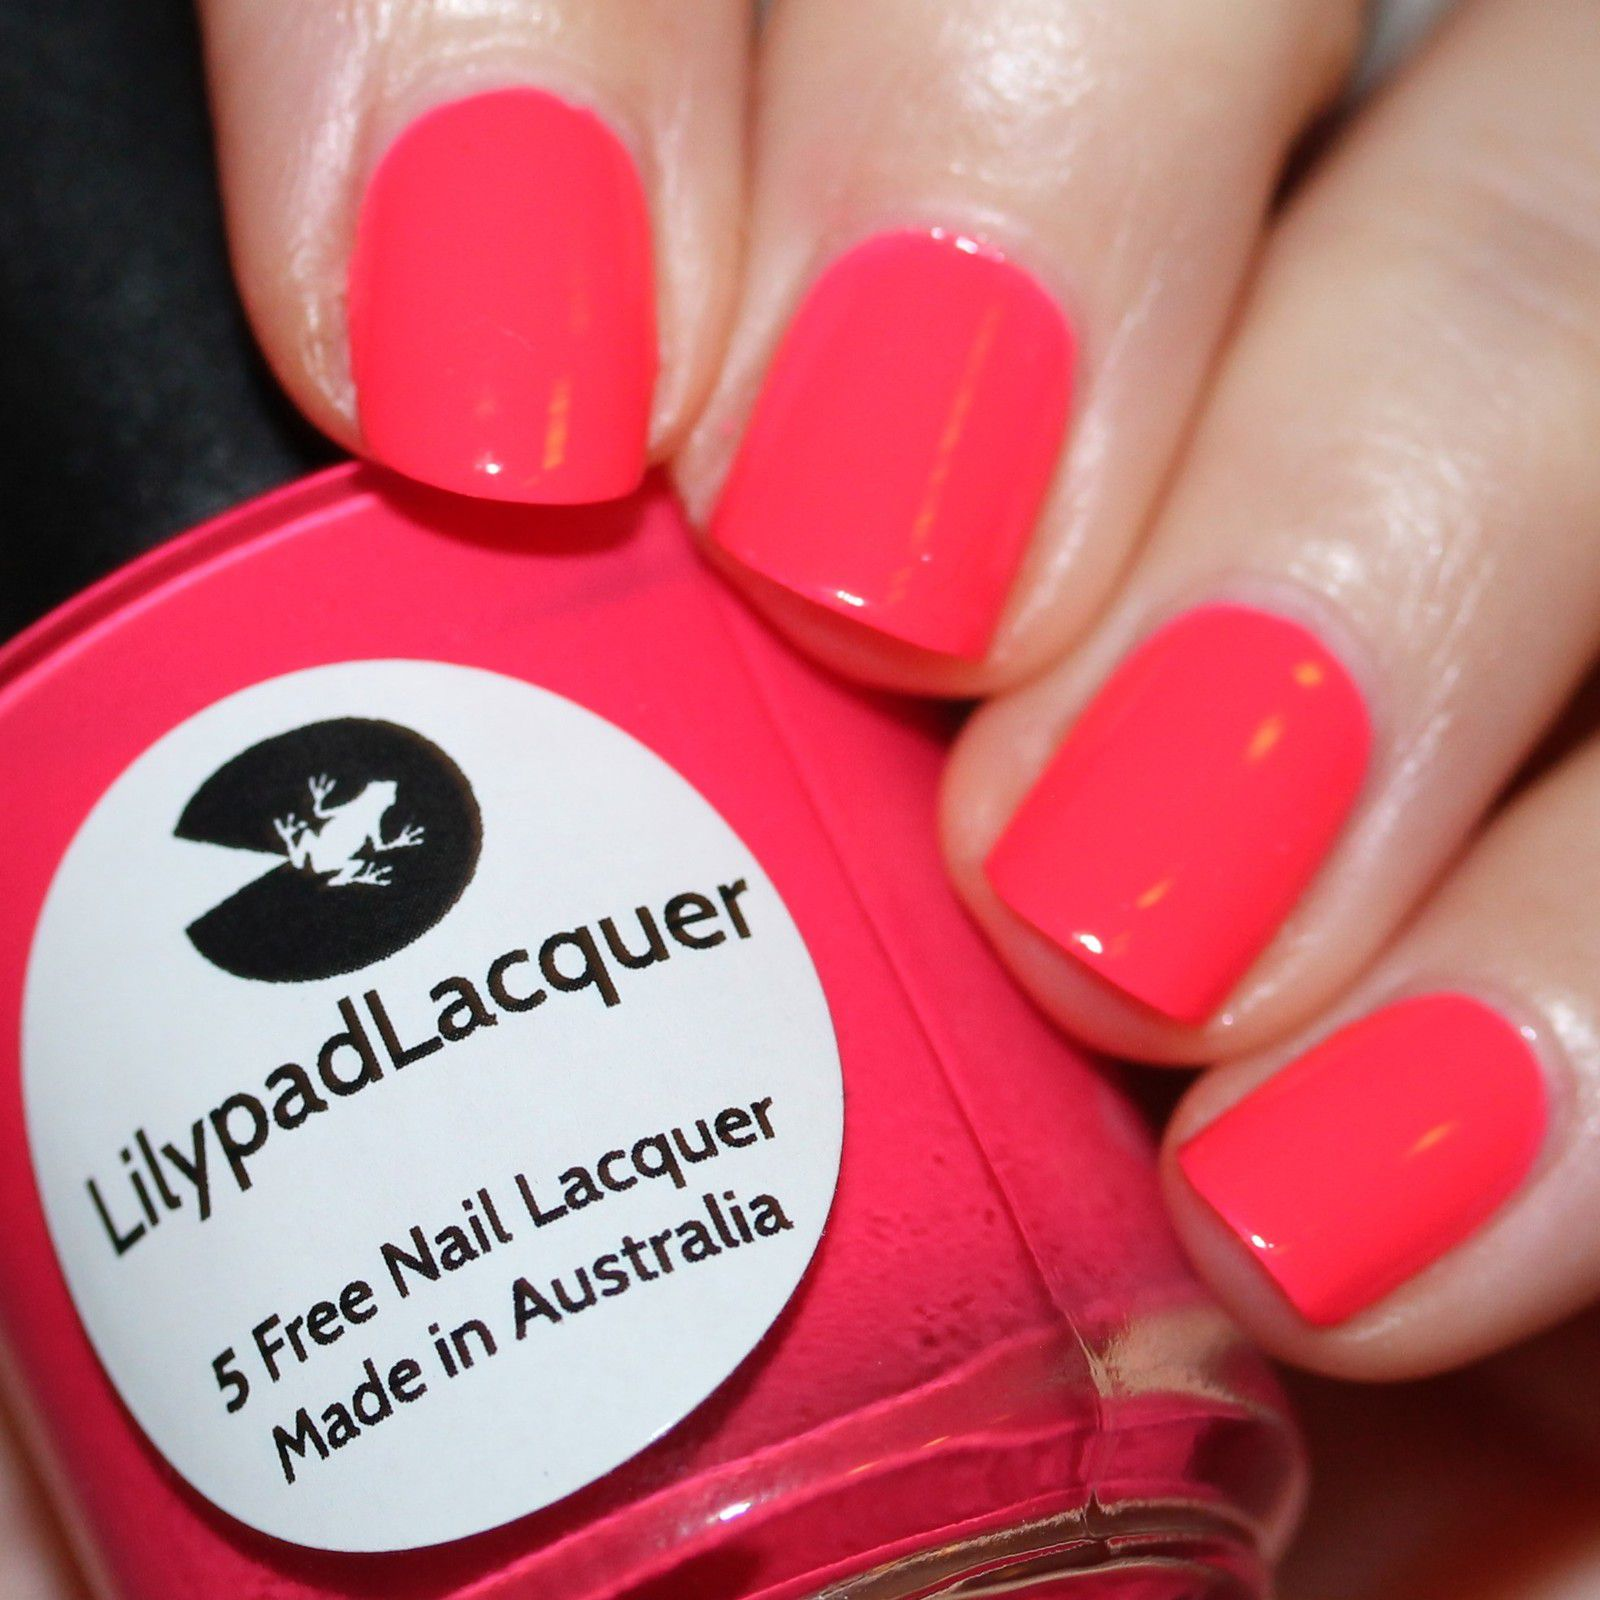 Lilypad Lacquer First Base / Lilypad Lacquer Strawberry Sundae / Lilypad Lacquer Crystal Clear Top Coat